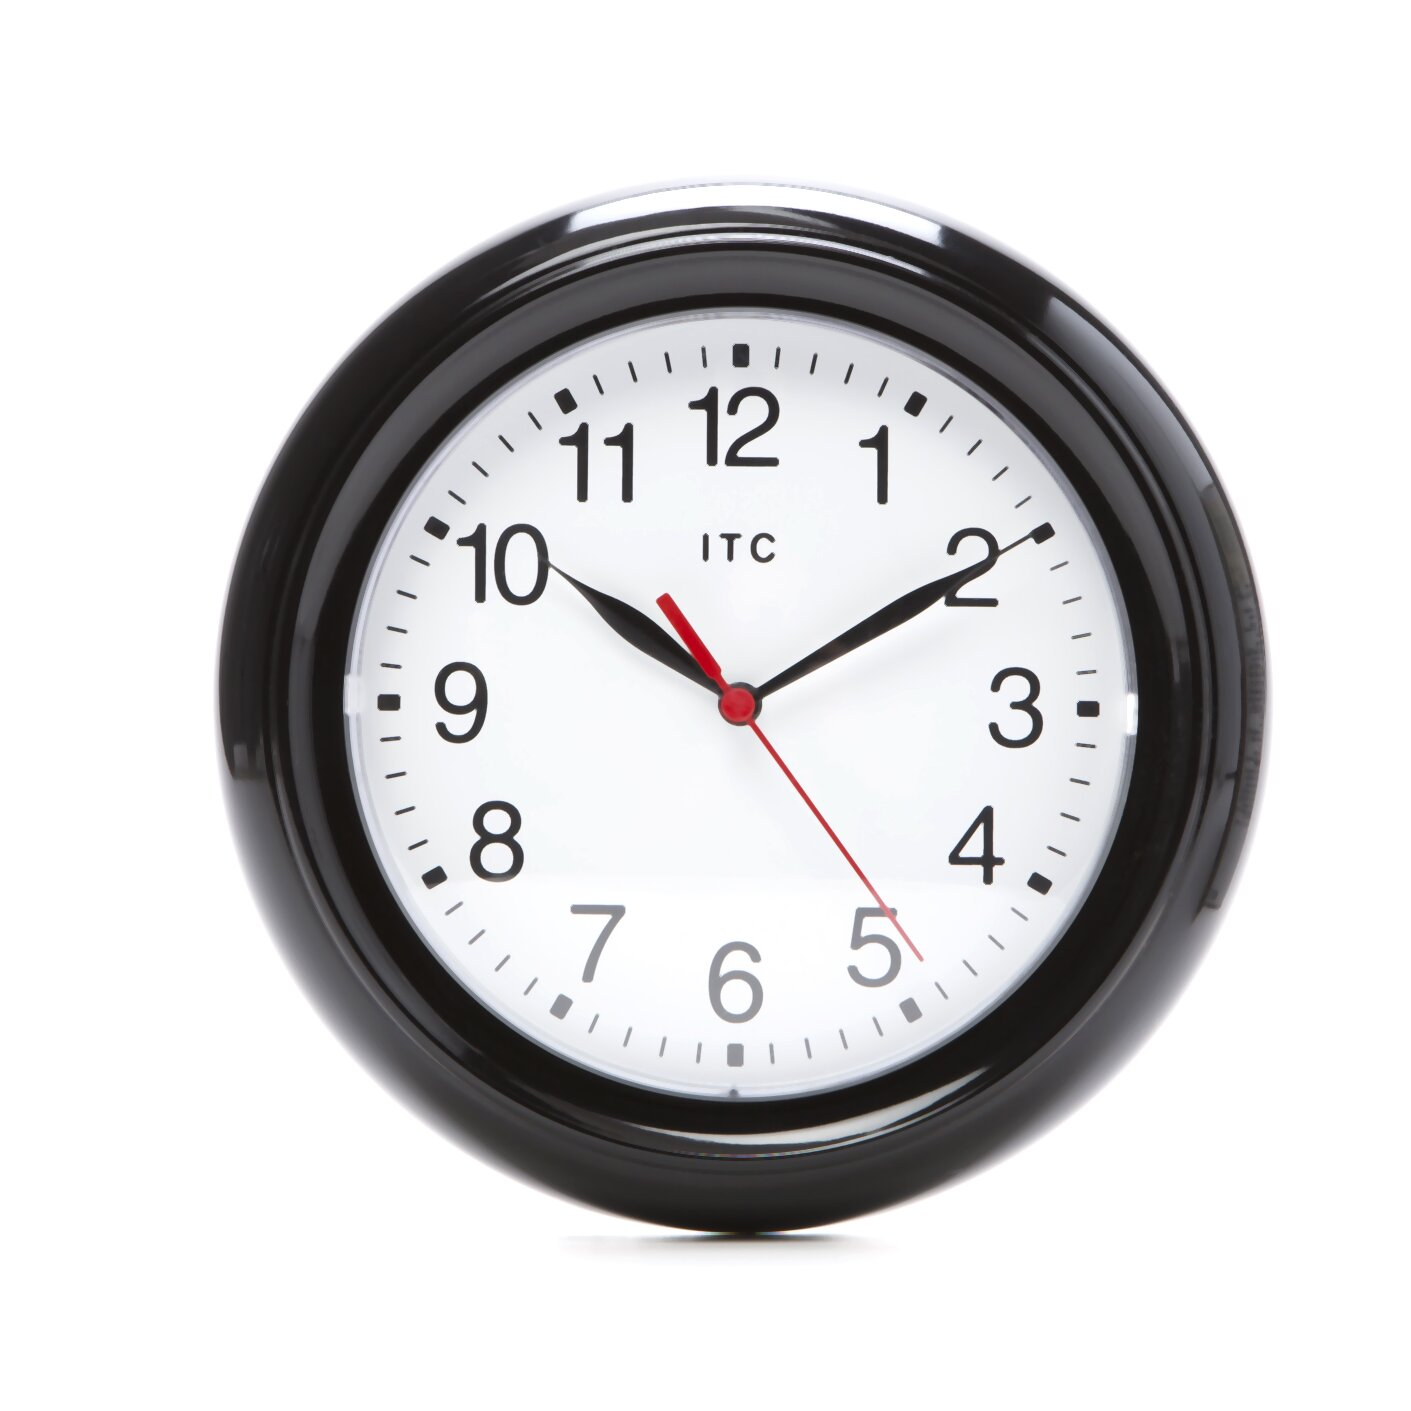 infinity instruments 9 small black wall clock reviews. Black Bedroom Furniture Sets. Home Design Ideas